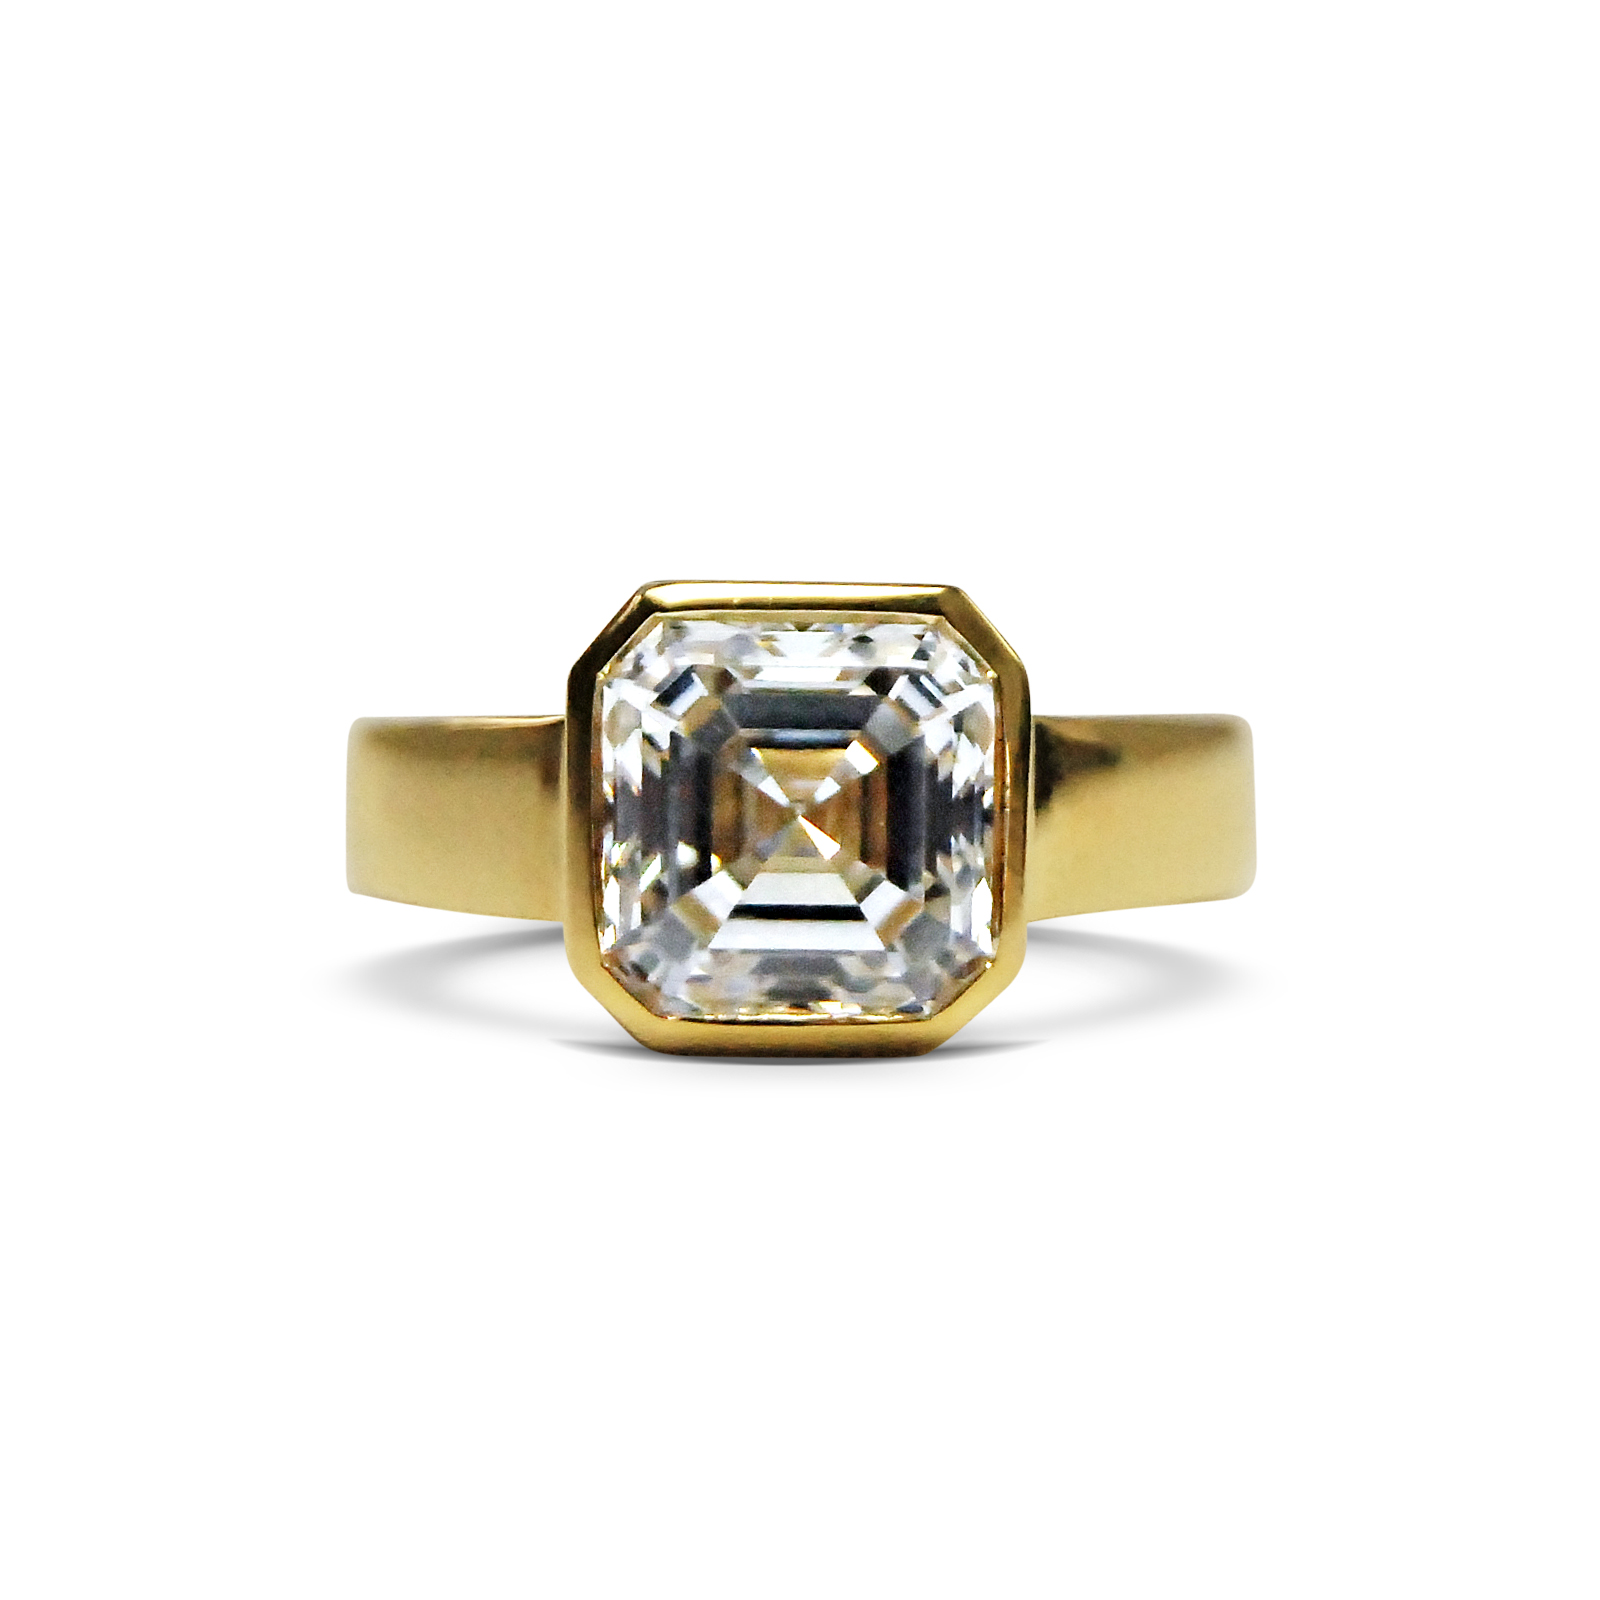 Asscher-cut-diamond-and-yellow-gold-ring.jpg